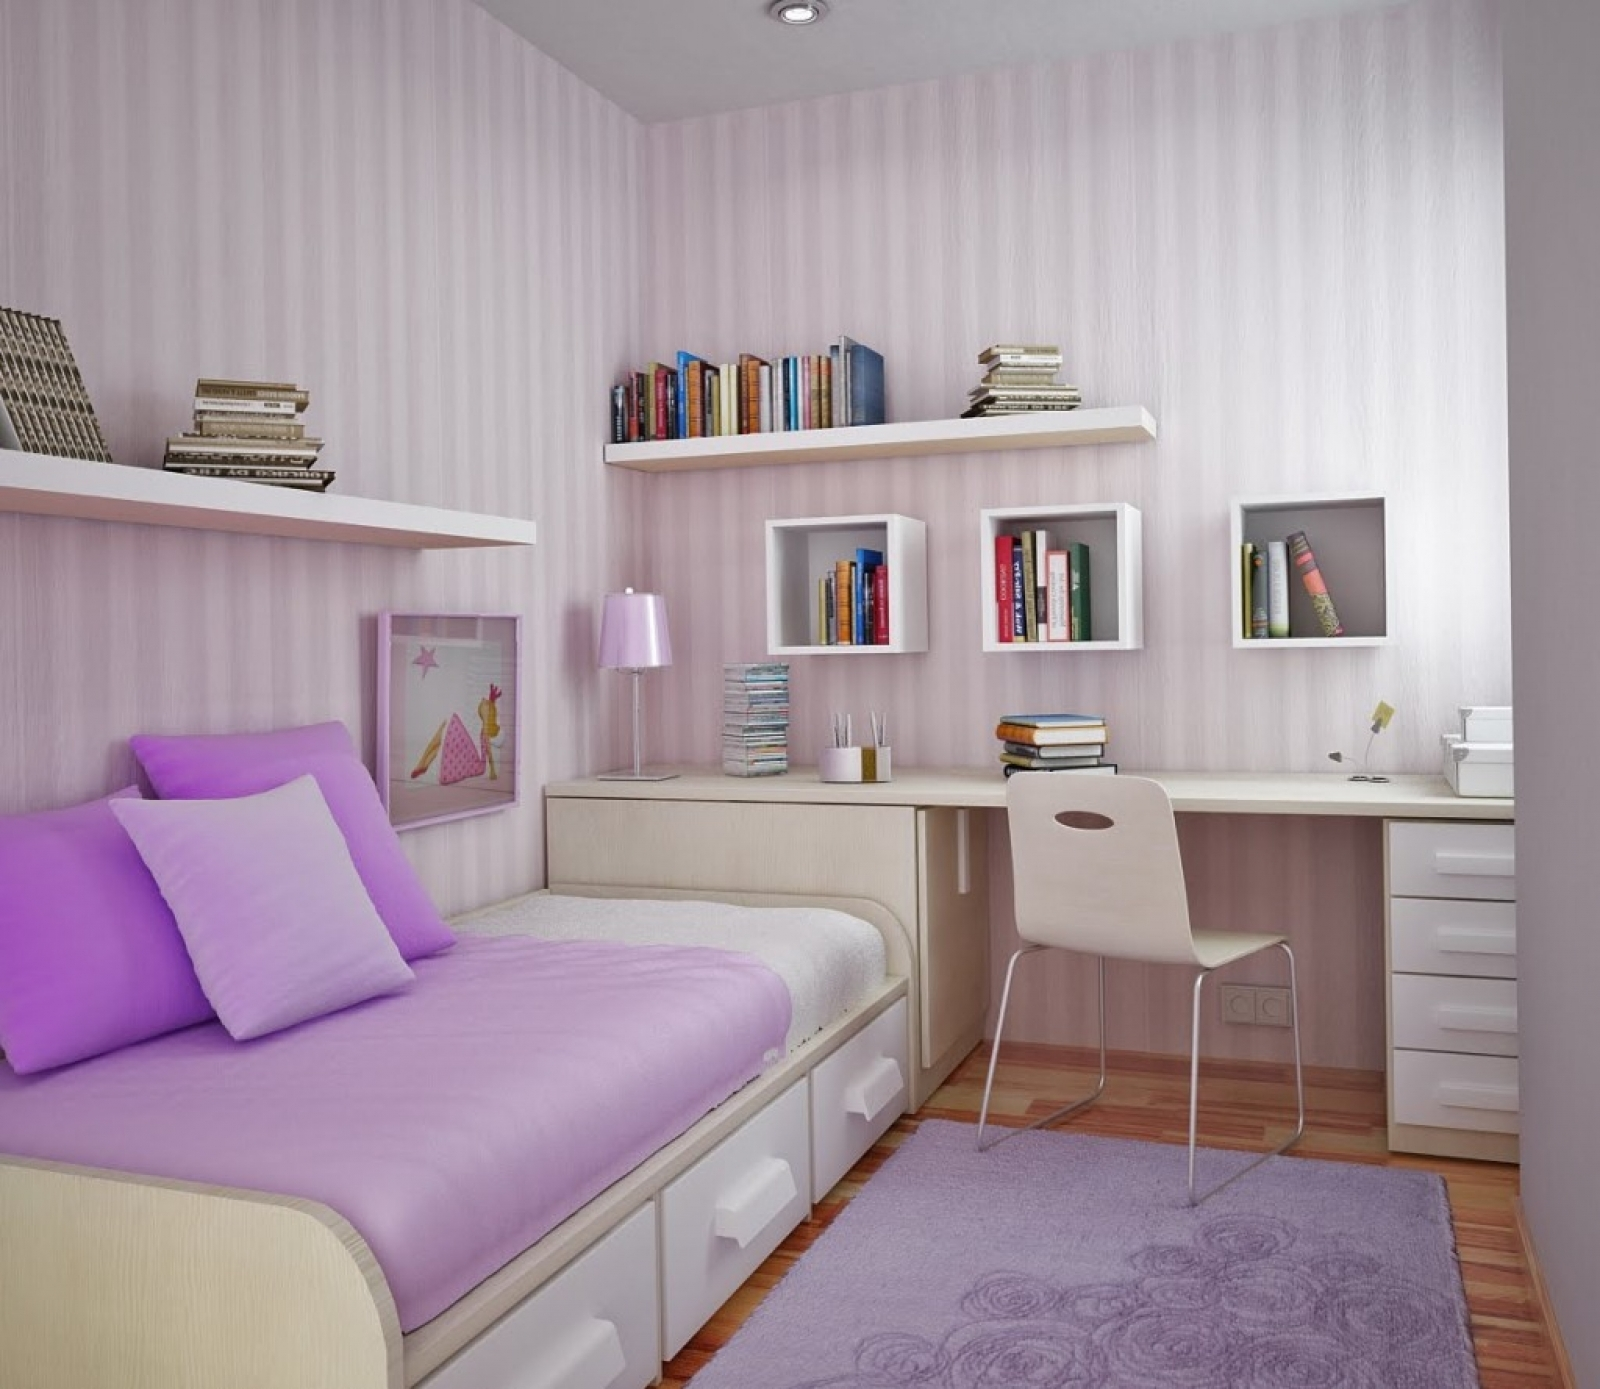 decorating ideas in small endearing bedroom ideas small spaces  jpeg